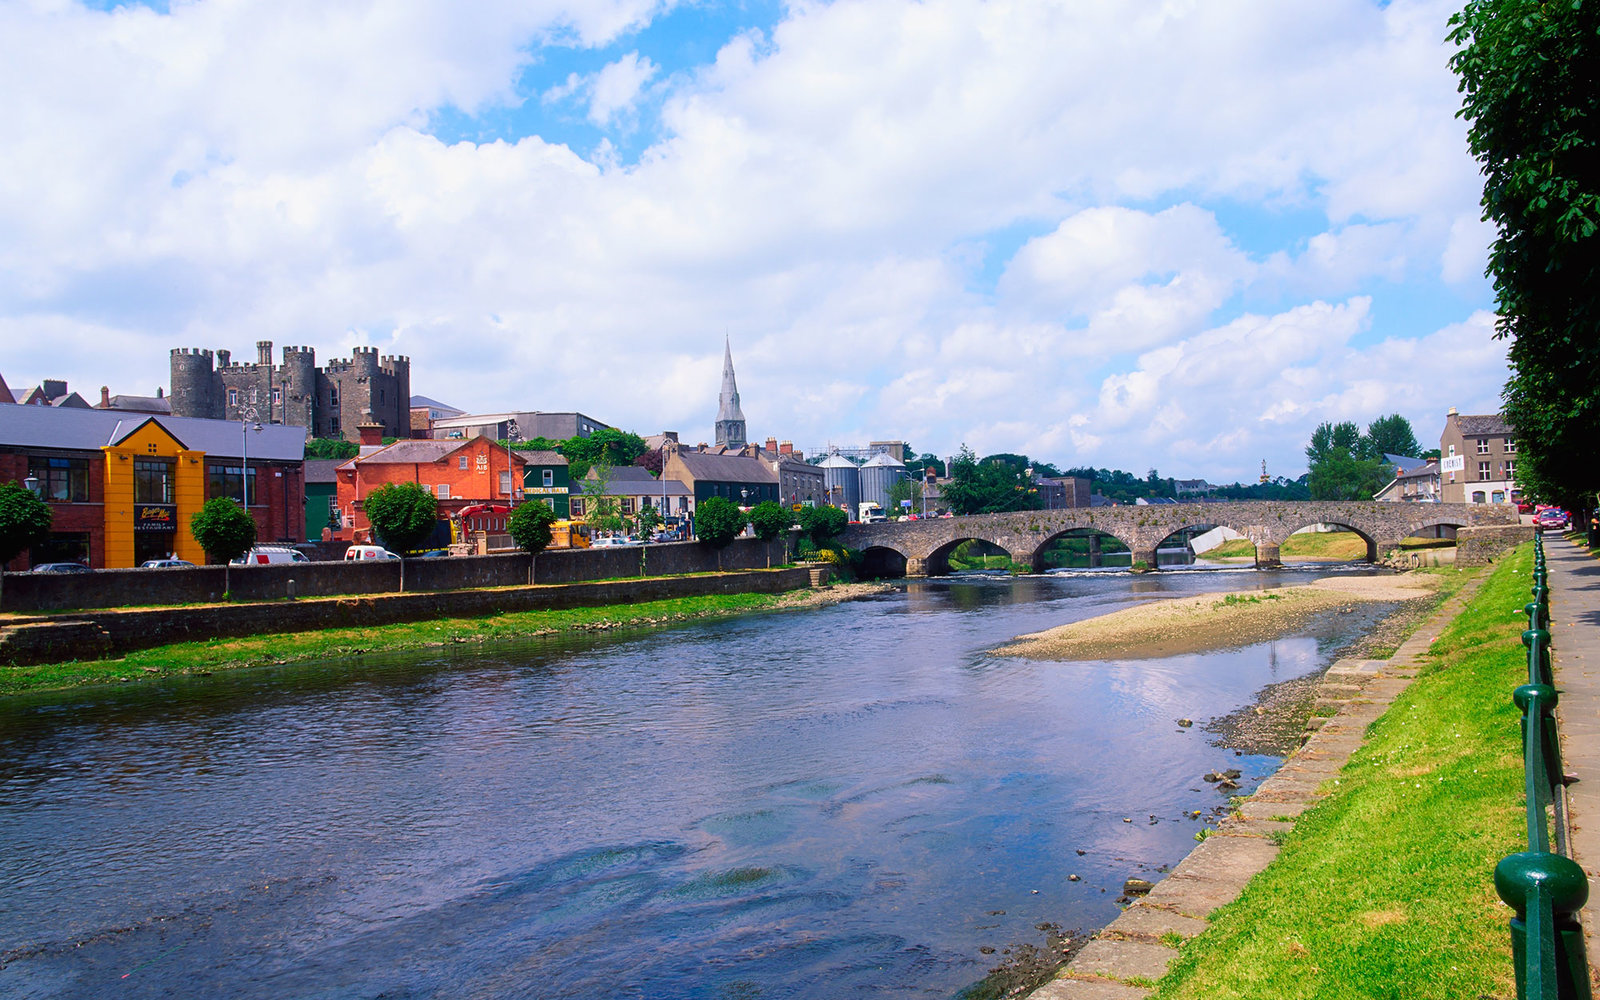 Co Wexford, Enniscorthy, Ireland